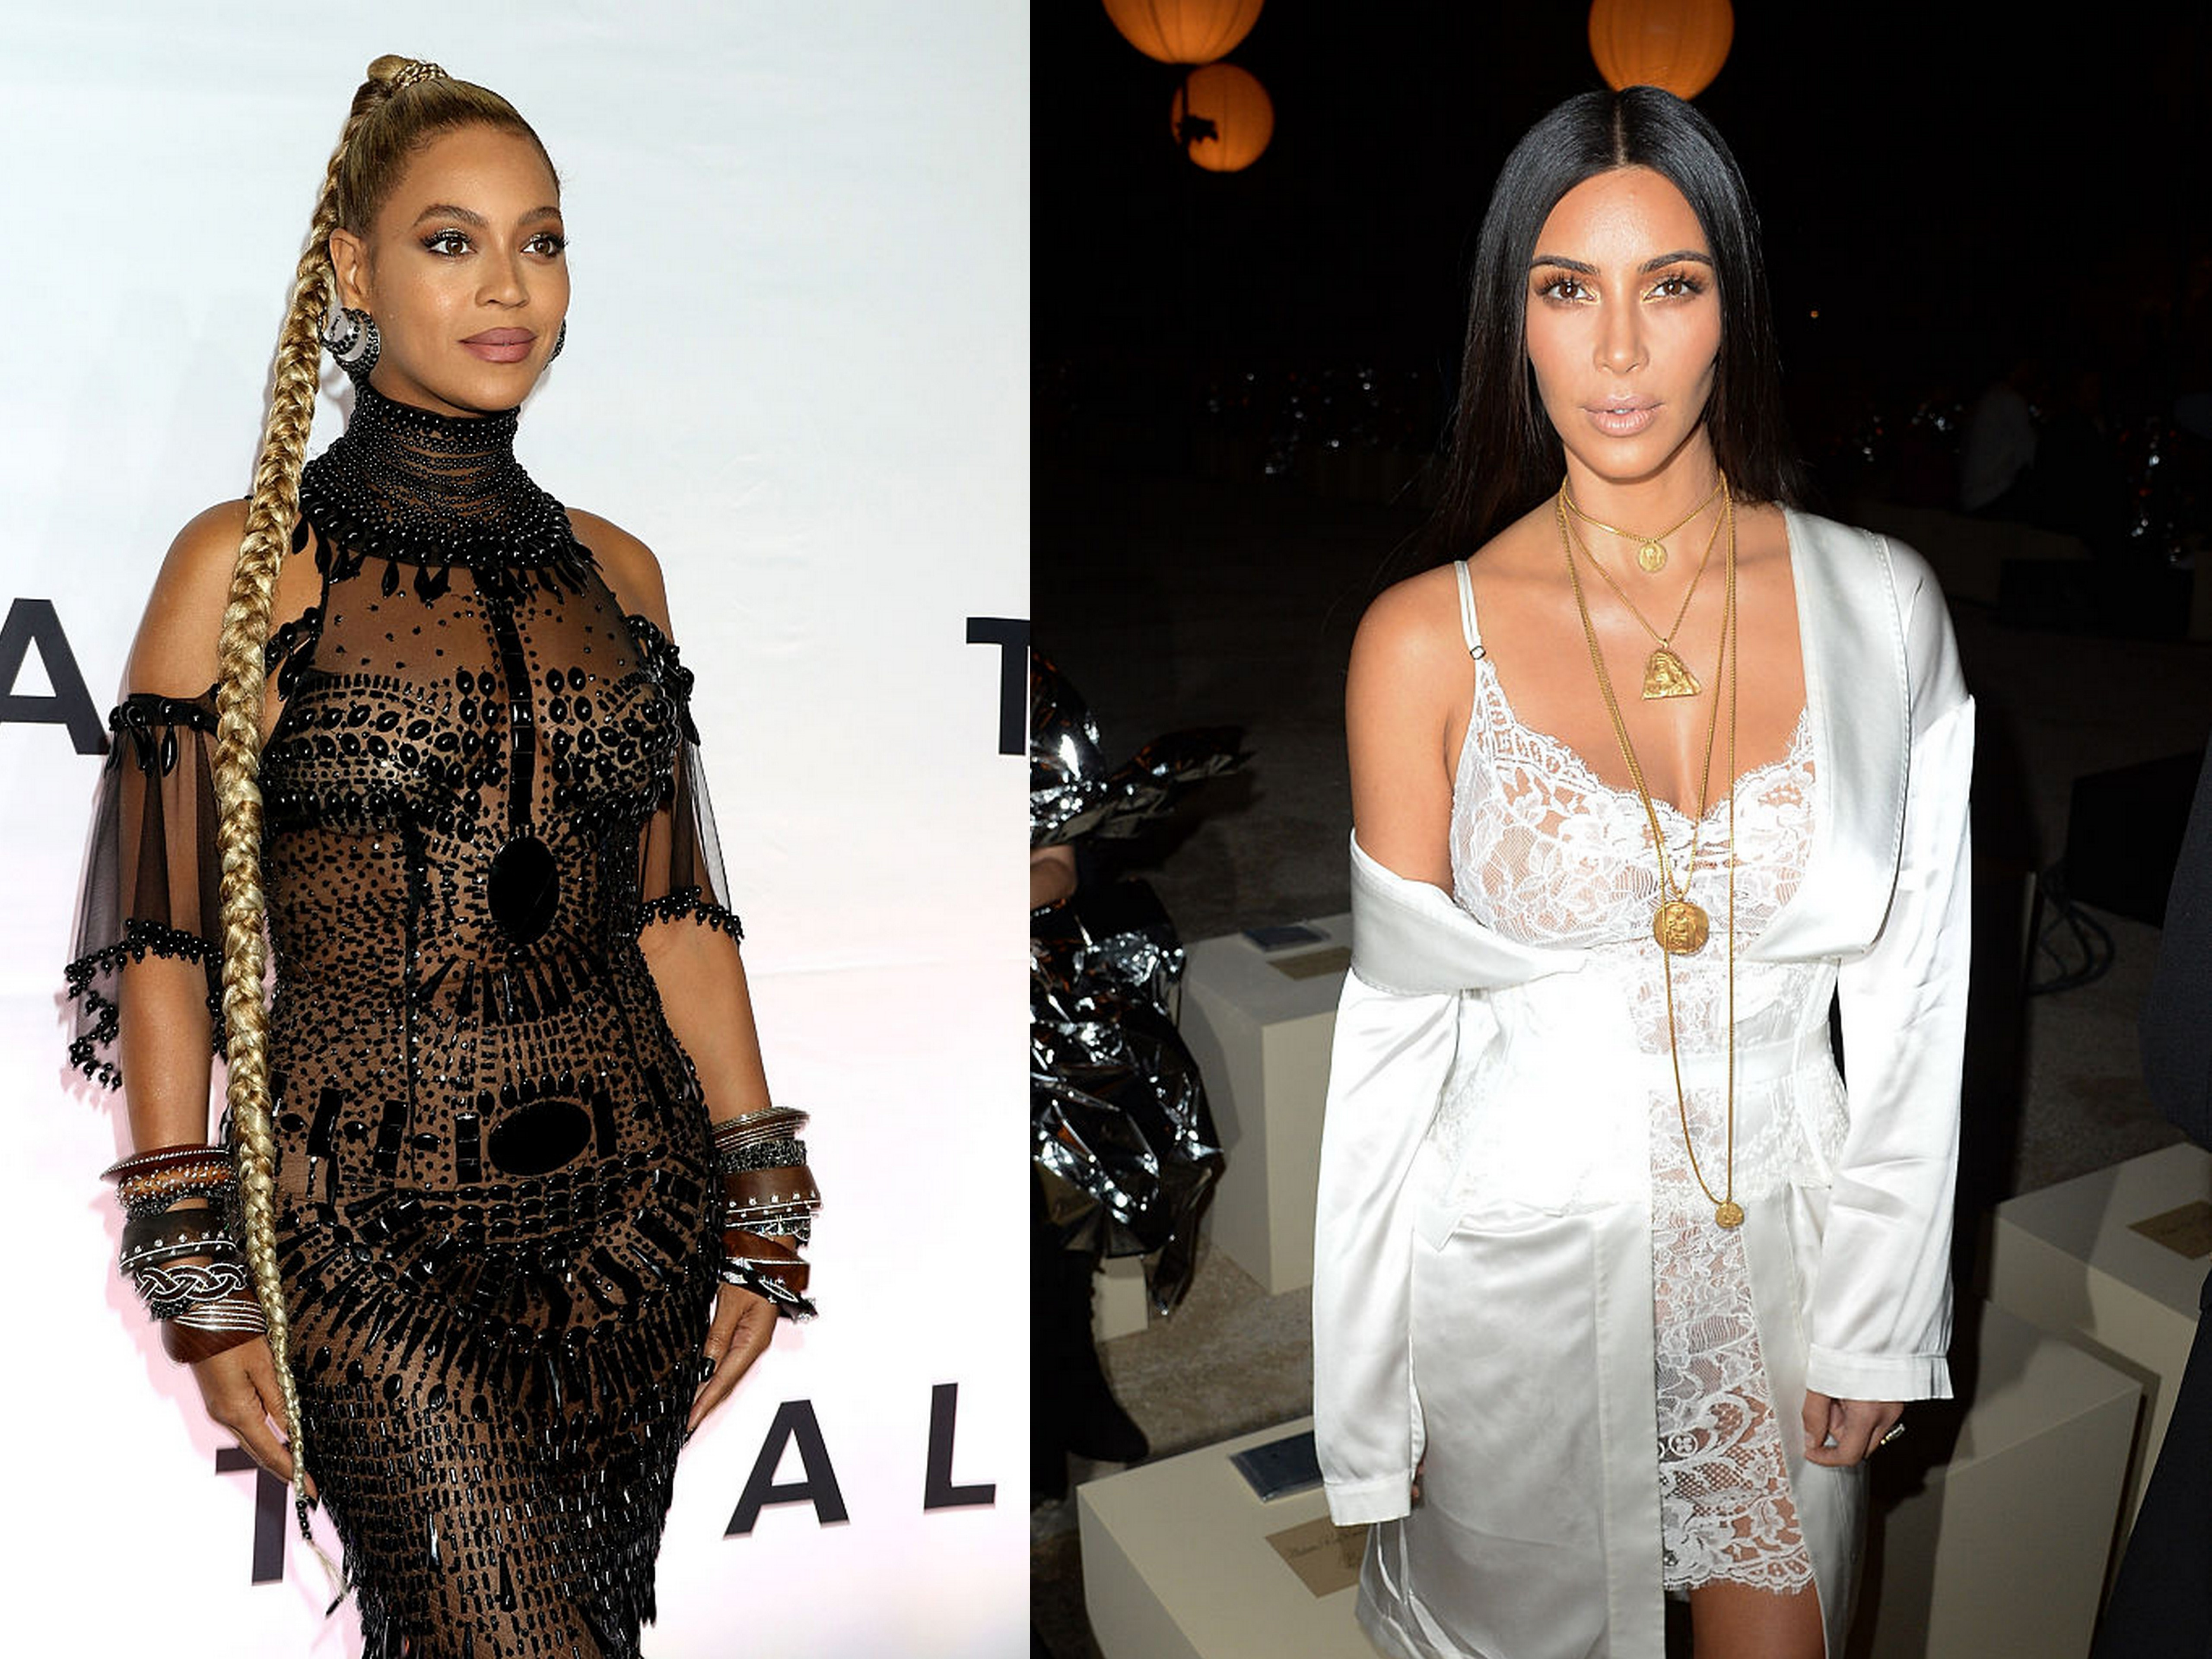 Source says Beyonce 'never liked' Kim Kardashian